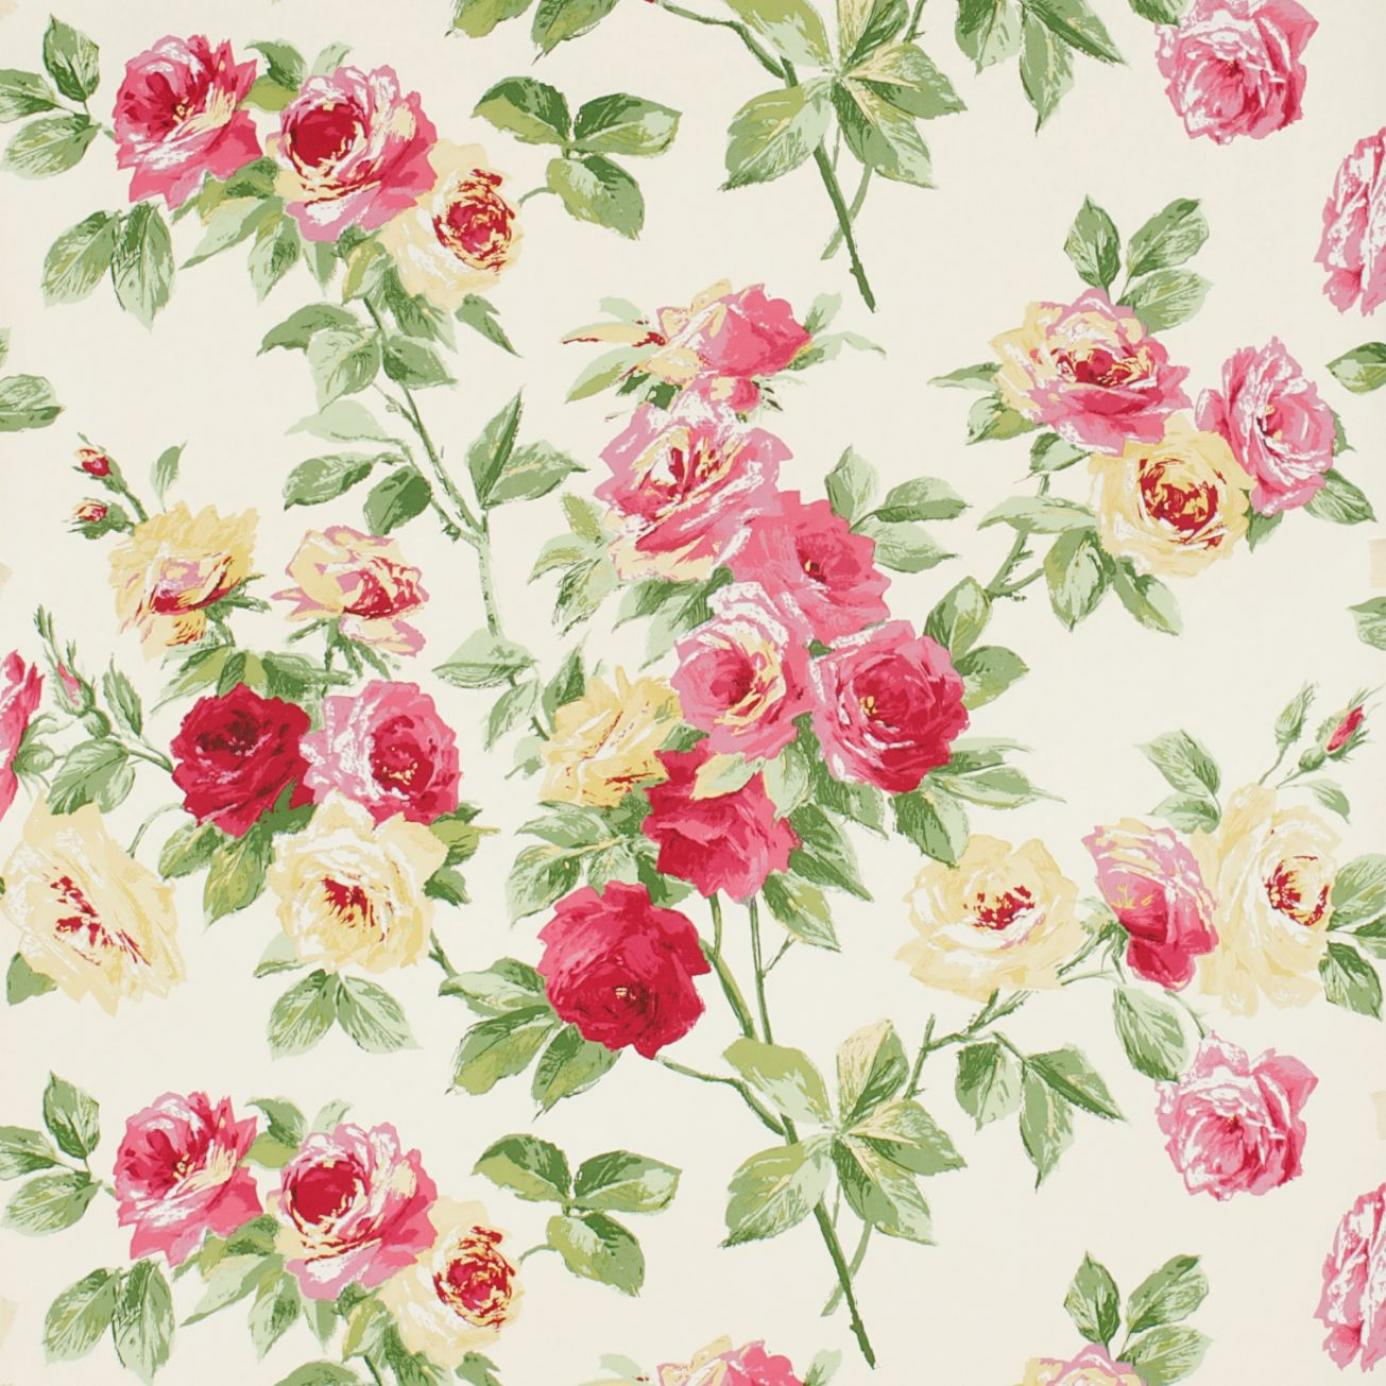 Home Wallpapers Sanderson Vintage Wallpapers Eglantine Wallpaper 1386x1386